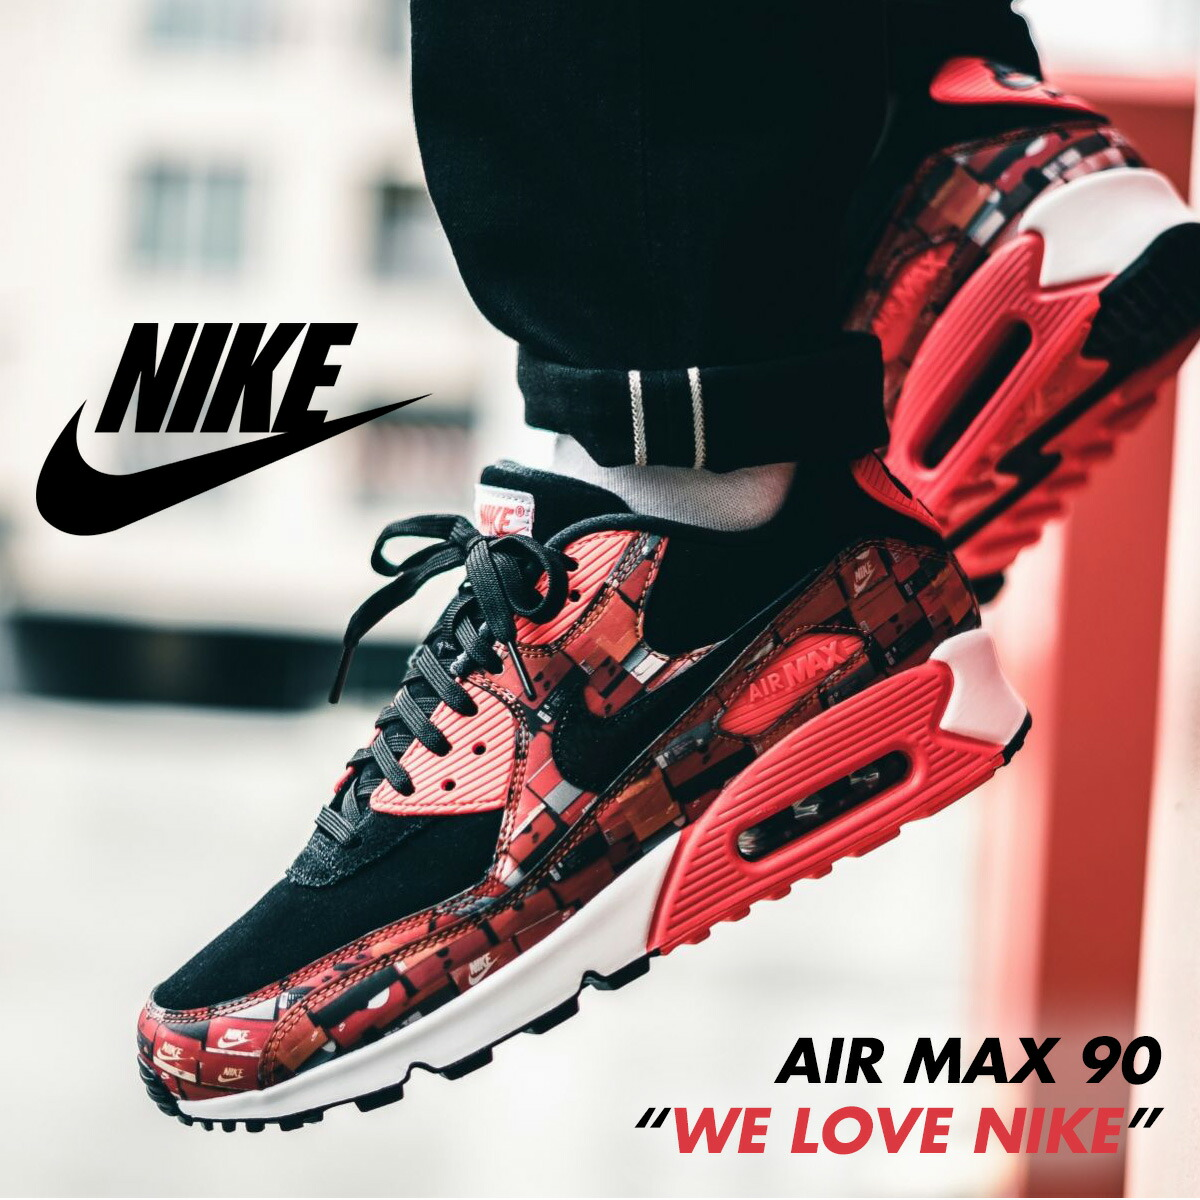 new product 71b6b bc62d Nike NIKE Air Max 90 sneakers men AIR MAX 90 PRNT WE LOVE NIKE red  AQ0926-001 [the 8/29 additional arrival]